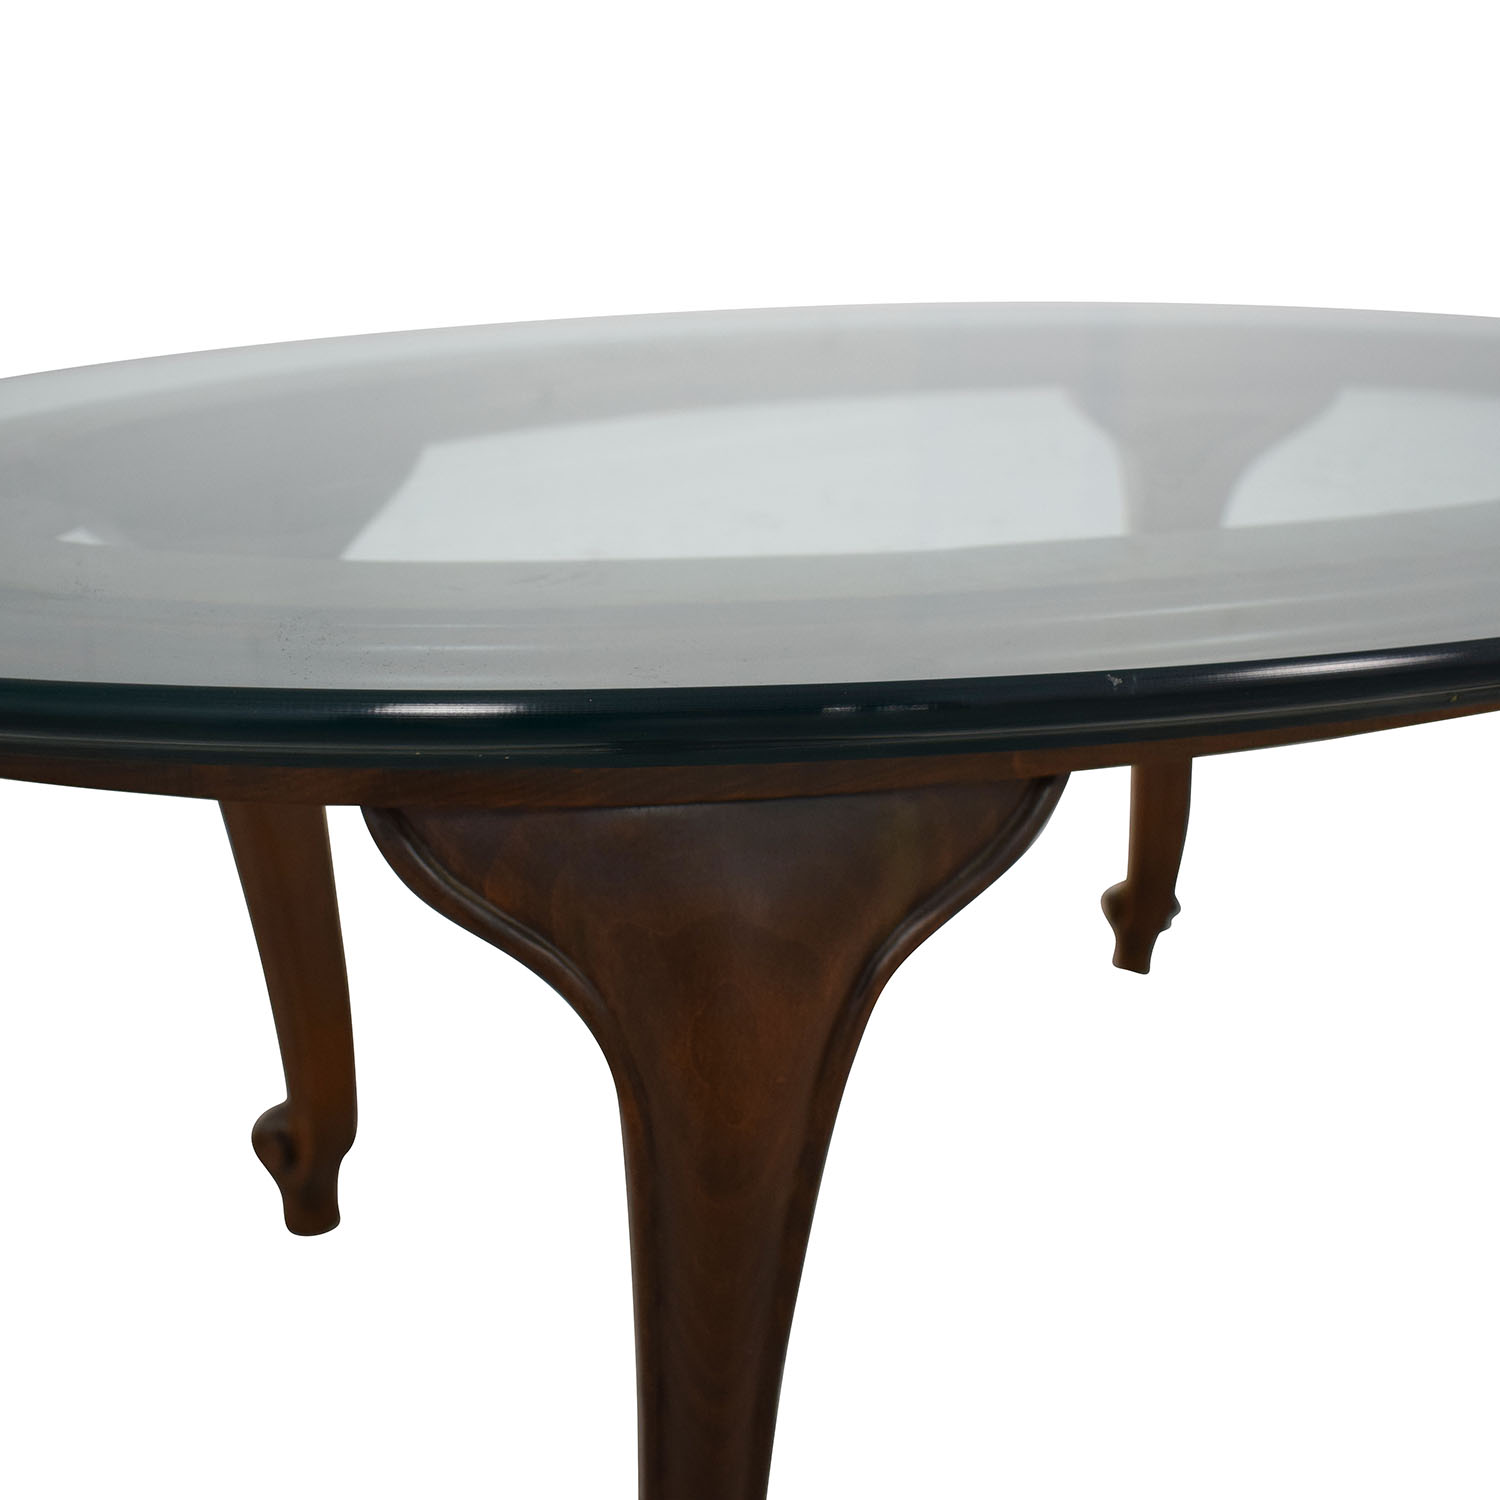 Macy's Macy's Oval Coffee Table price